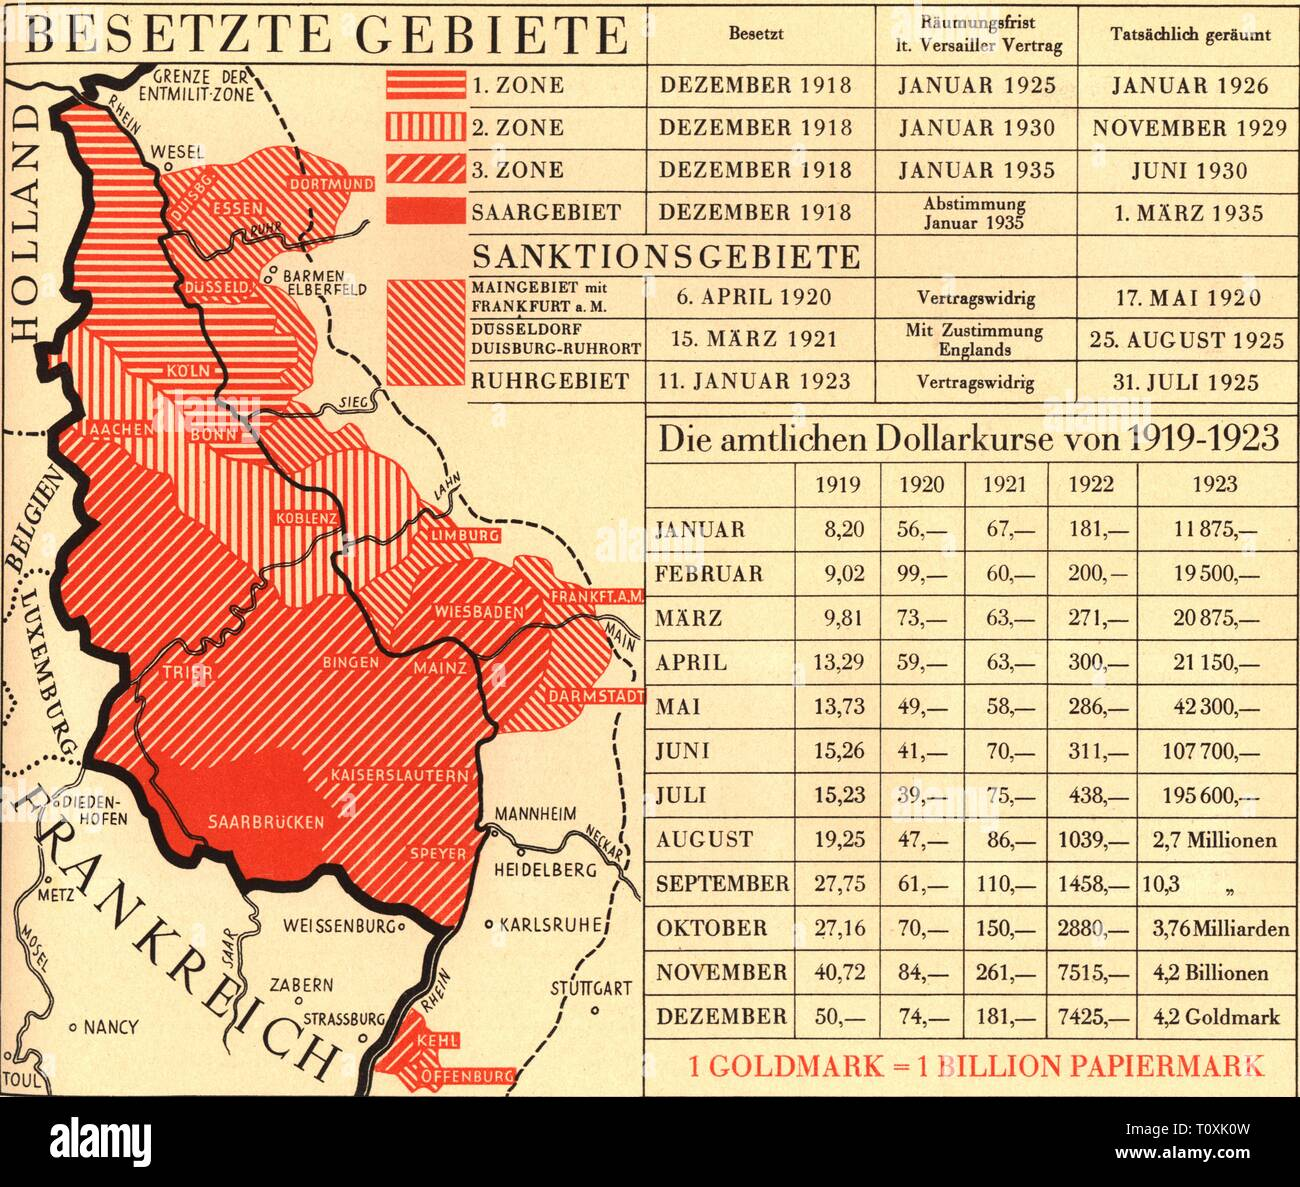 cartography, political maps, occupied areas 1918 - 1935, chart: official dollar rates 1919 - 1923, omnibus volume 'Die Nachkriegszeit', 1935, entente, Saarland, Rhineland, Ruhr area, Ruhr Valley, demilitarised zone, demilitarized zone, Prussia, Rhine Province, Bavaria, Bavarian palatinate, Hesse, Baden, American dollar, dollar rate, quotation, gold mark, inflation, inflations, hyperinflation, Germany, German Reich, Third Reich, Weimar Republic, 1910s, 1920s, 20th century, 1930s, maps, map, area, areas, chart, charts, post war period, post-war per, Additional-Rights-Clearance-Info-Not-Available - Stock Image